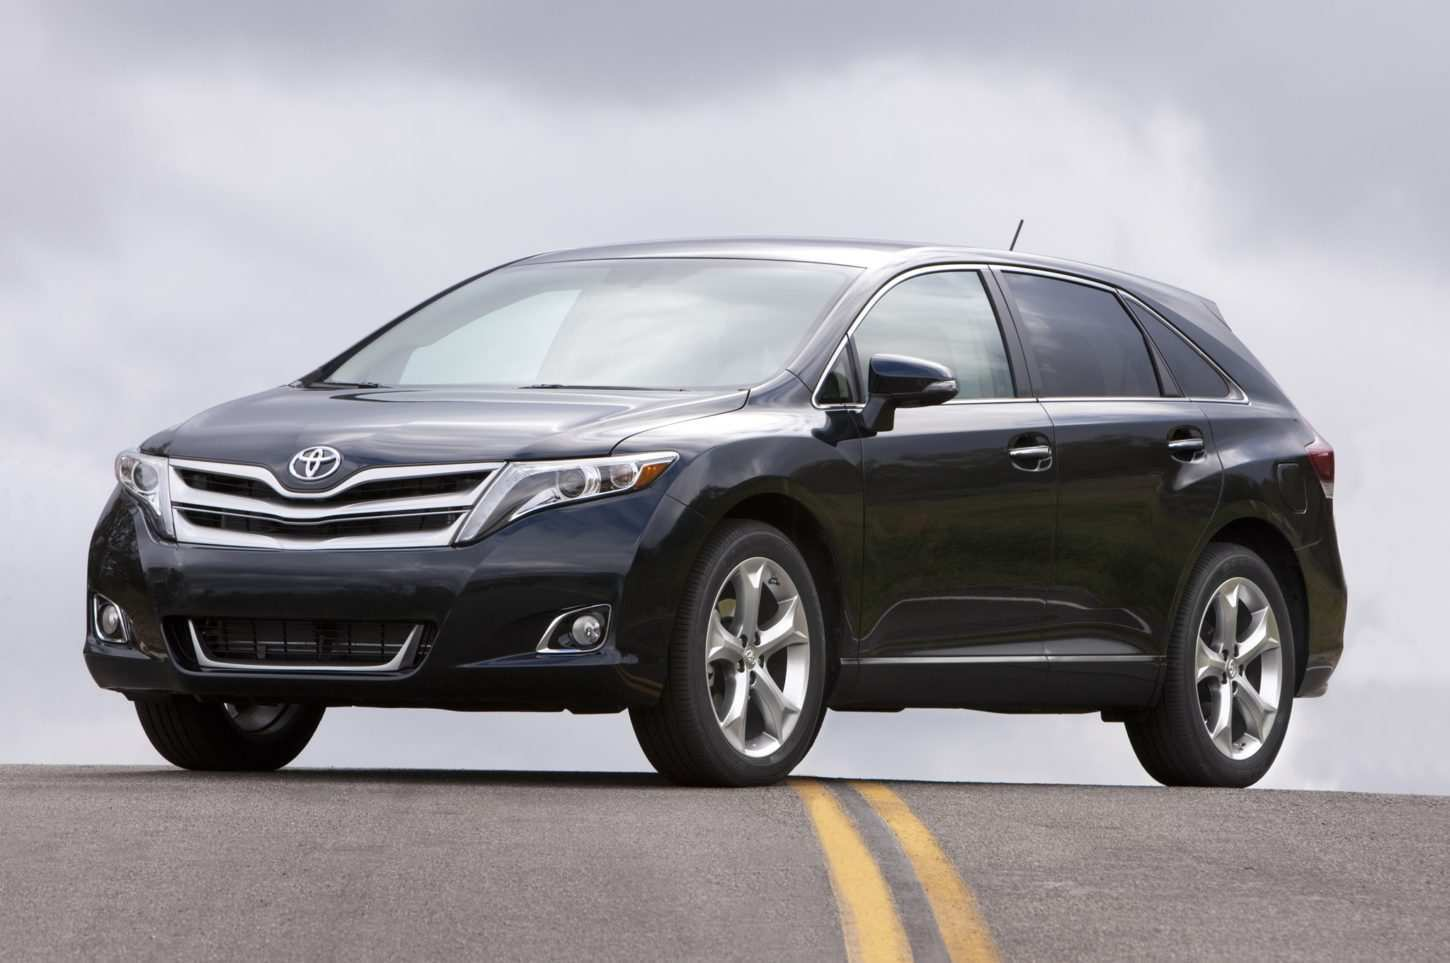 75 Best 2019 Toyota Venza Price And Release Date